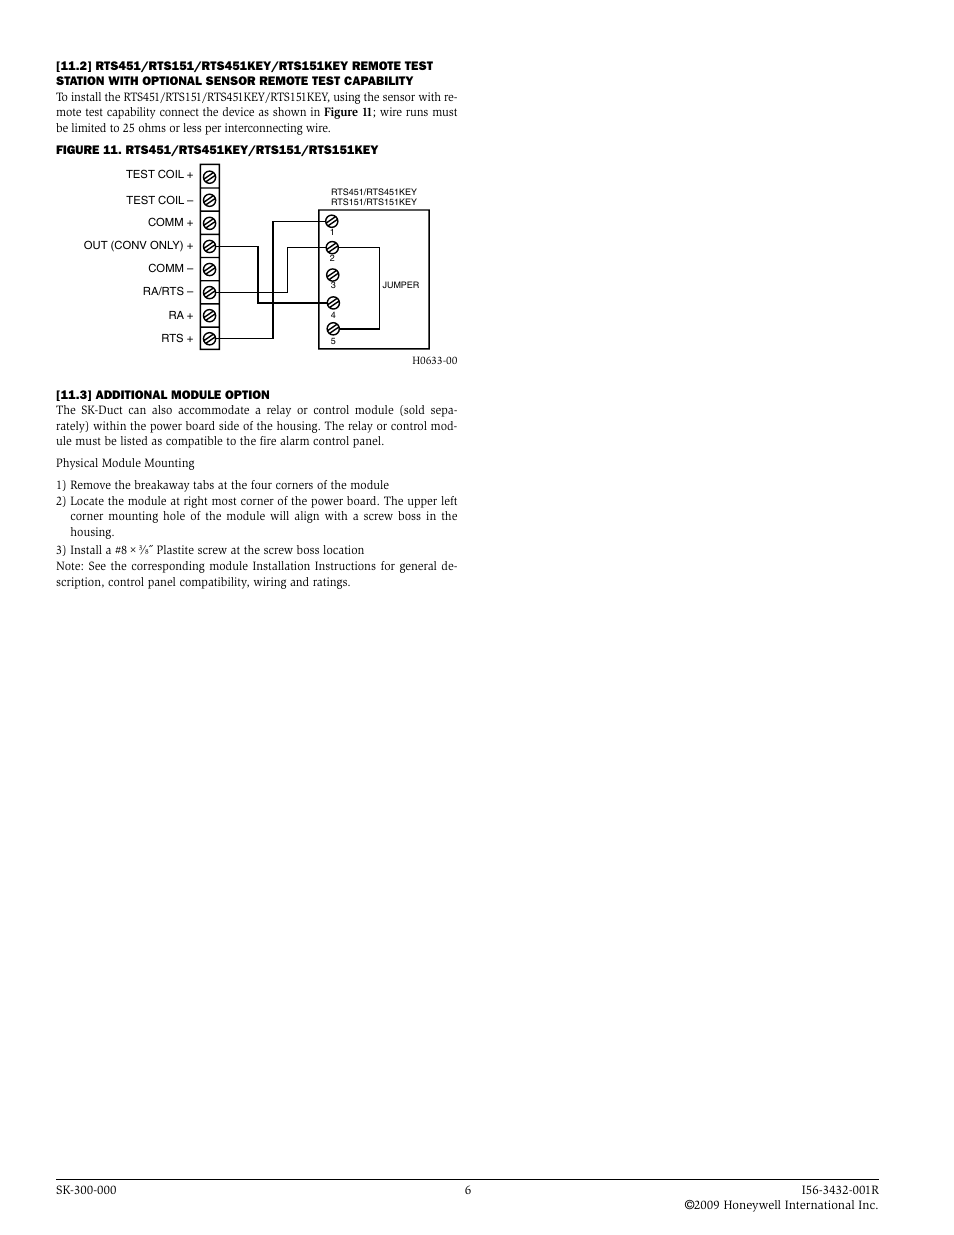 Sk Duct Wiring Diagram Free Download Addressable Smoke Detector Auto Electrical U2022 At